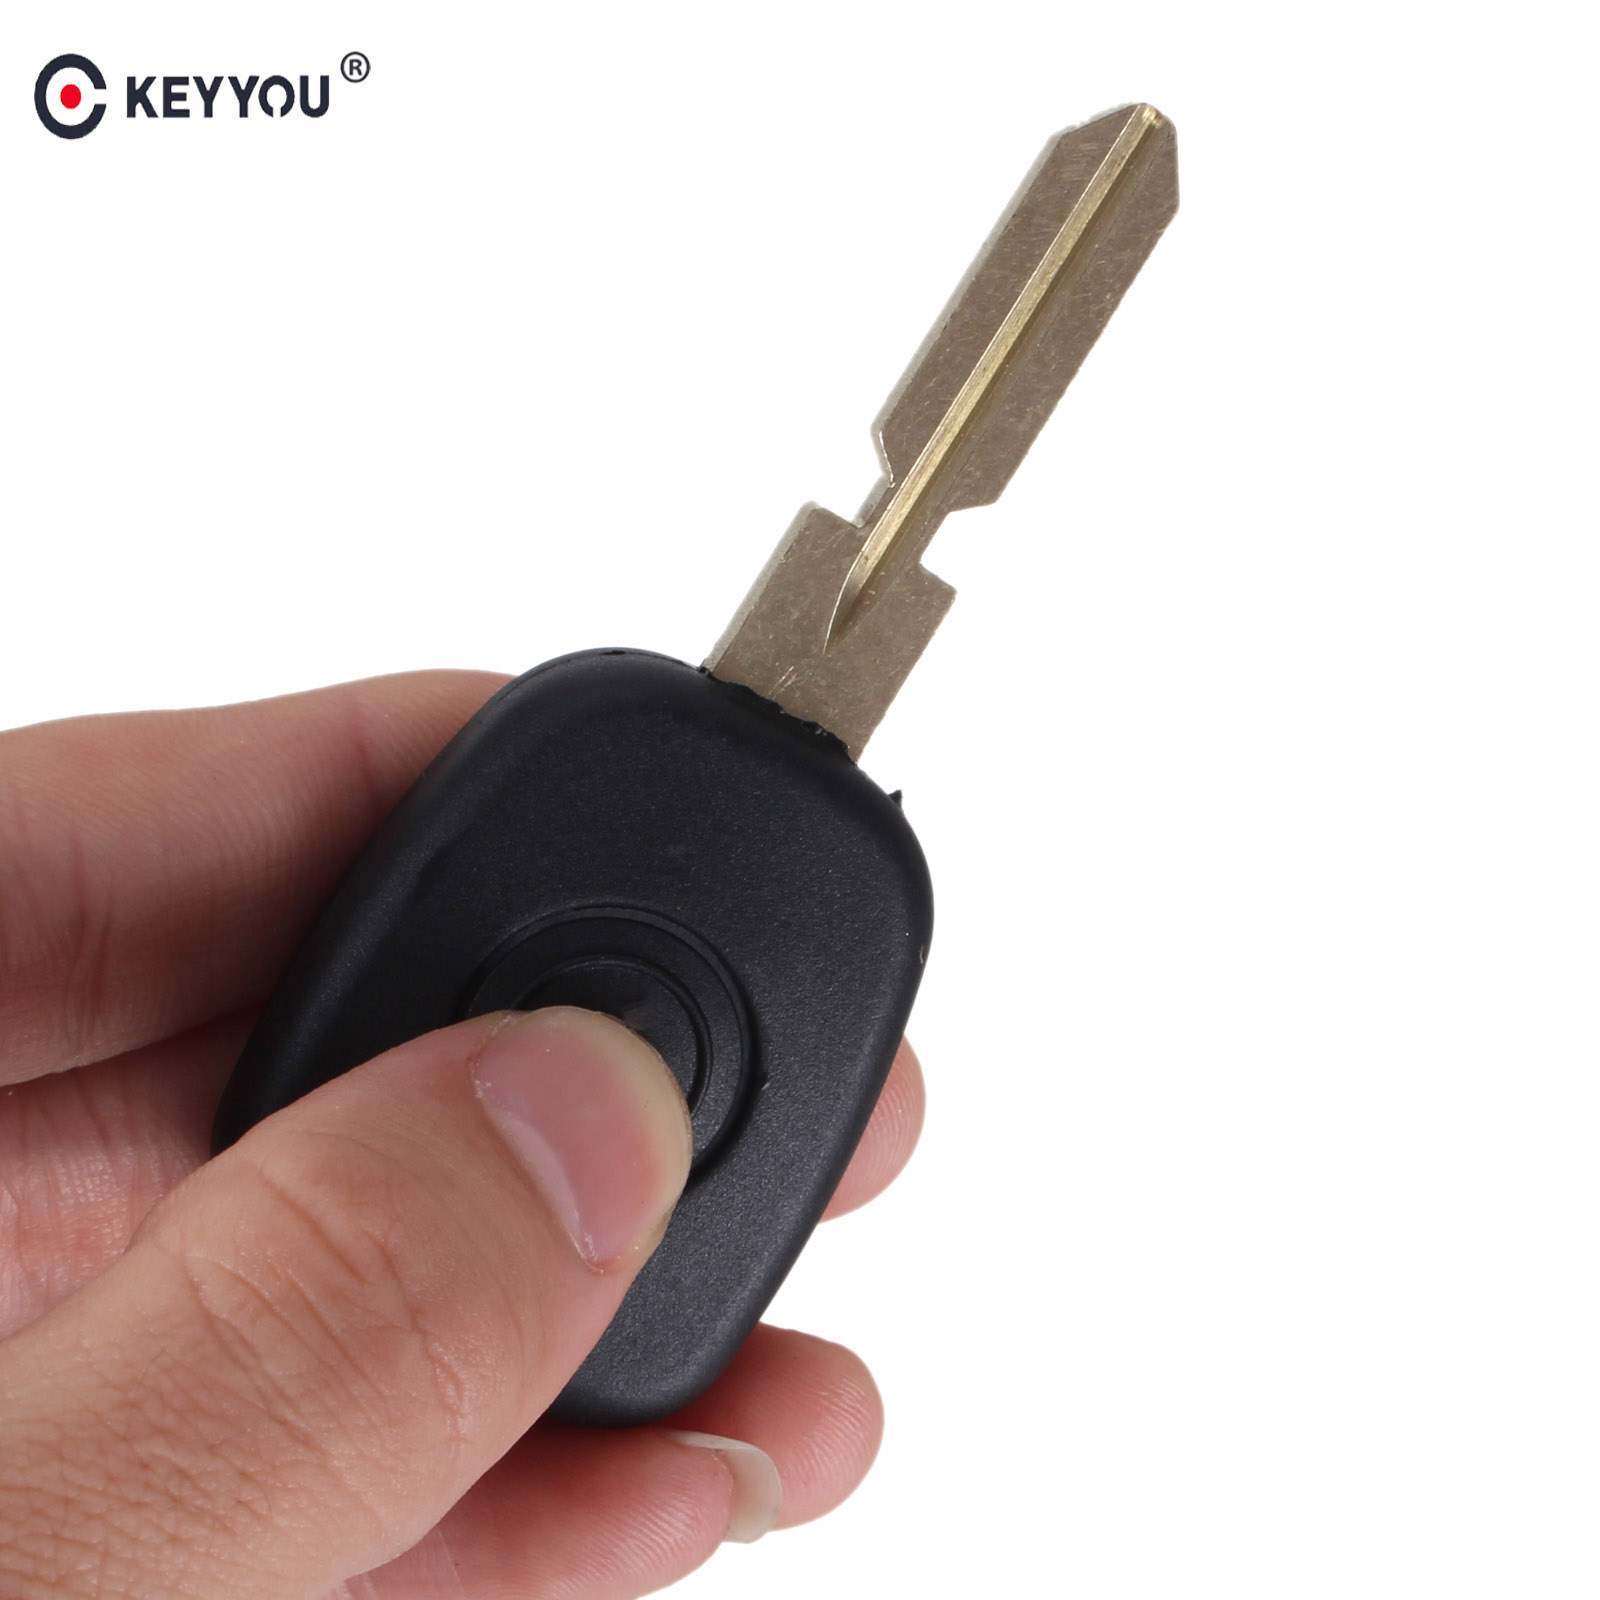 KEYYOU Car Key Cover Replacement Case Auto Transponder Key Shell With HU39 Key Blade For Mercedes Benz цены